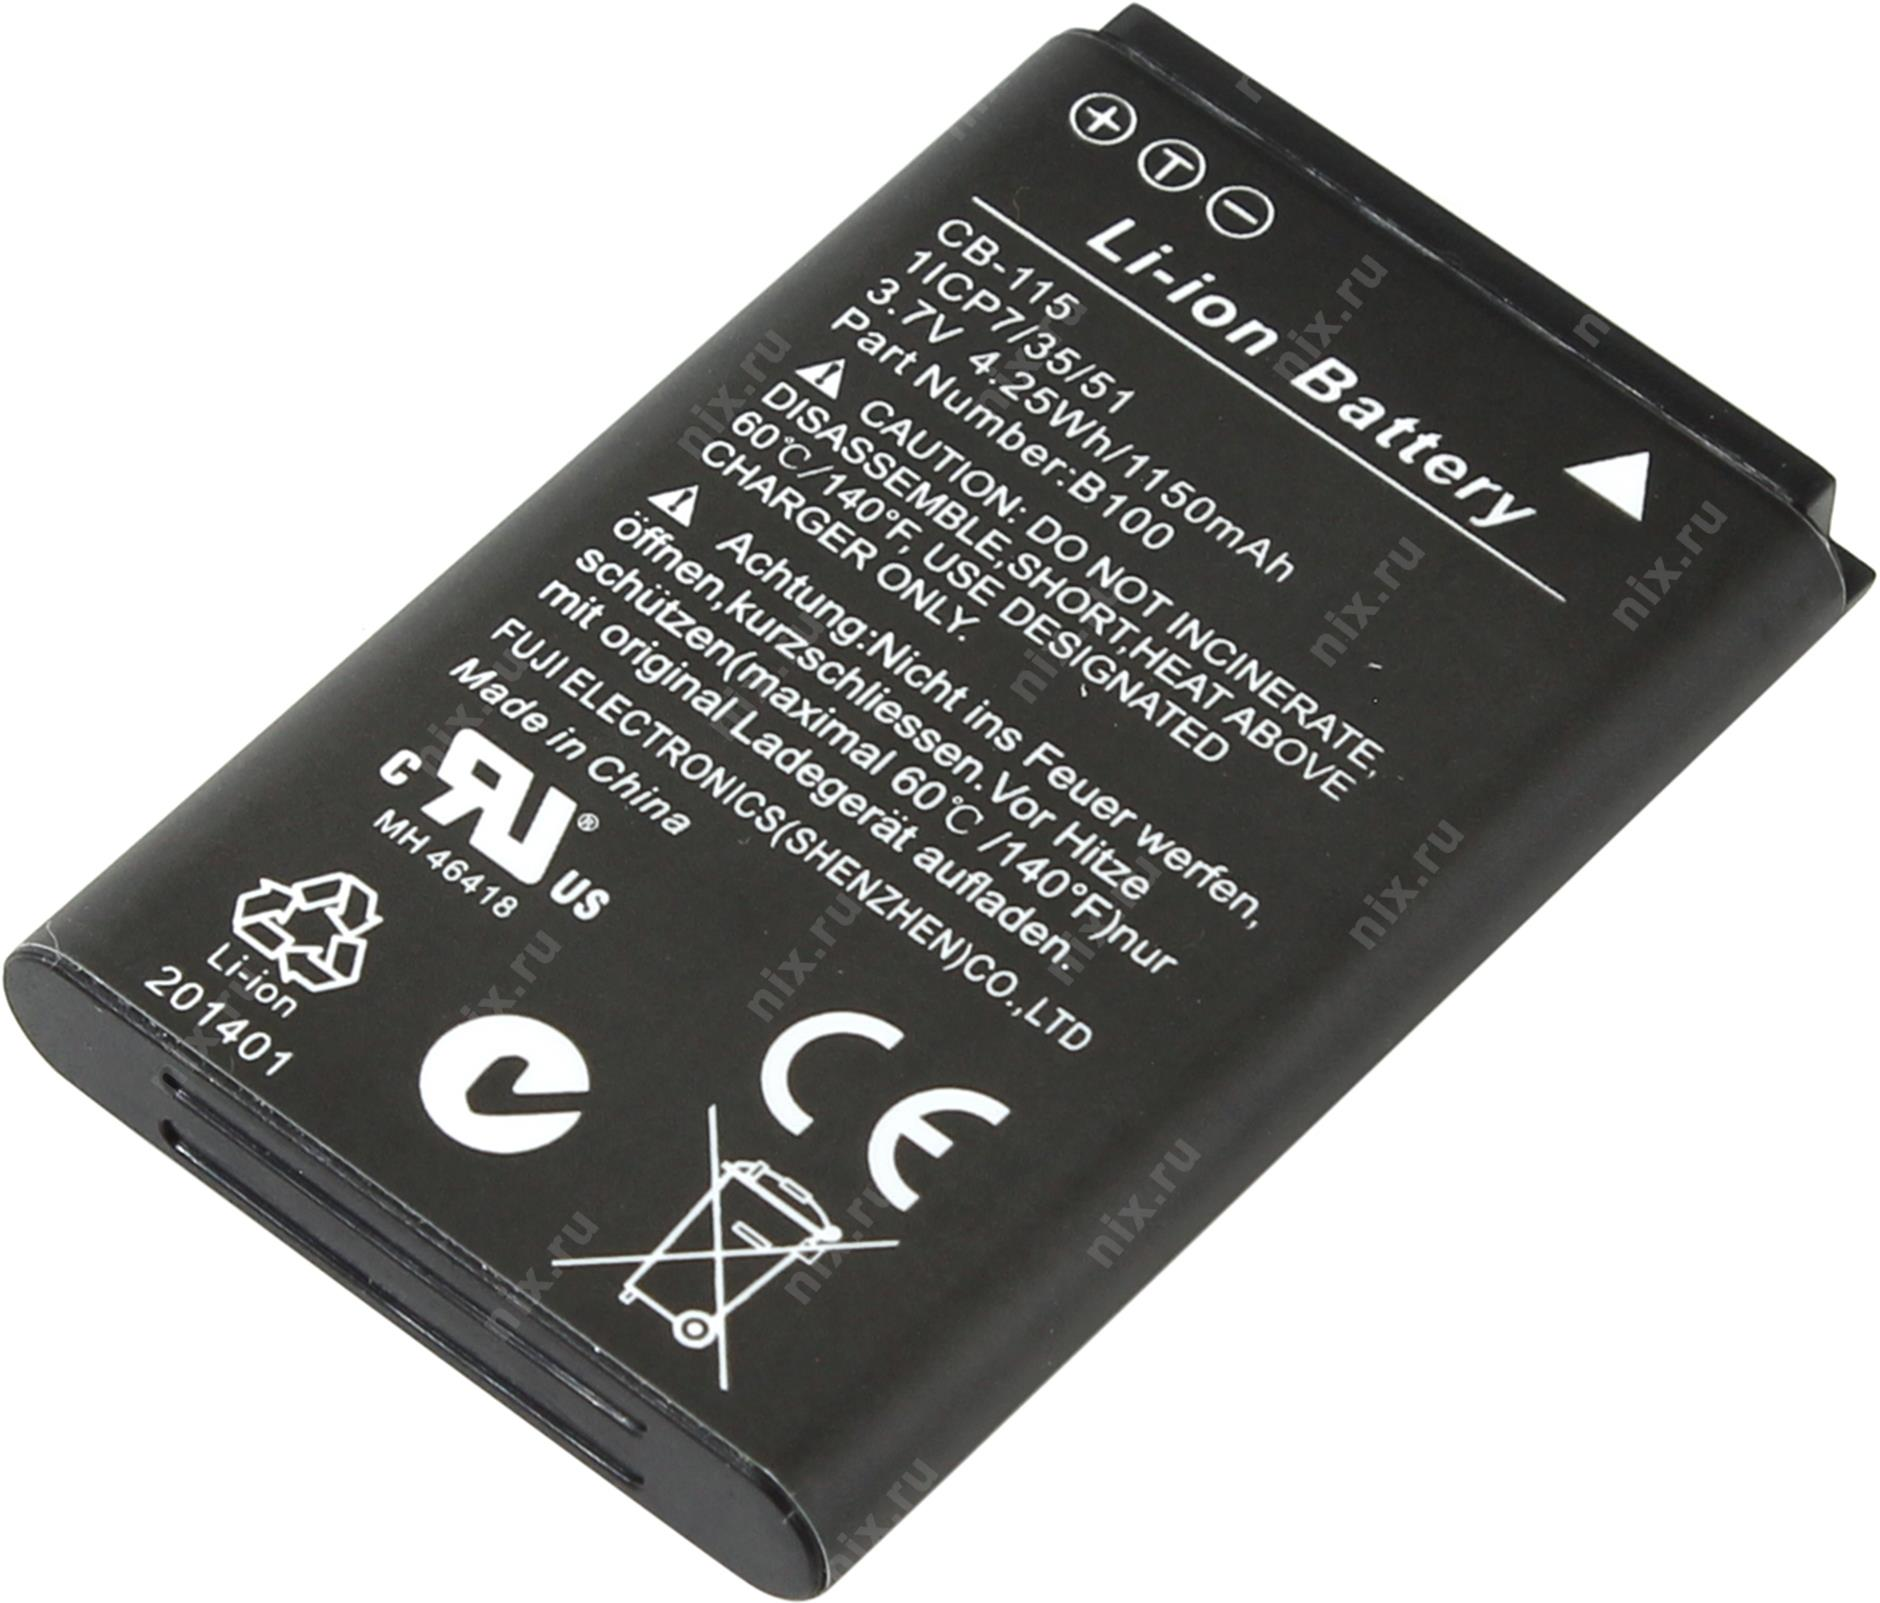 CAT B100 original battery CB-115 1150 mAh akumulators, baterija mobilajam telefonam